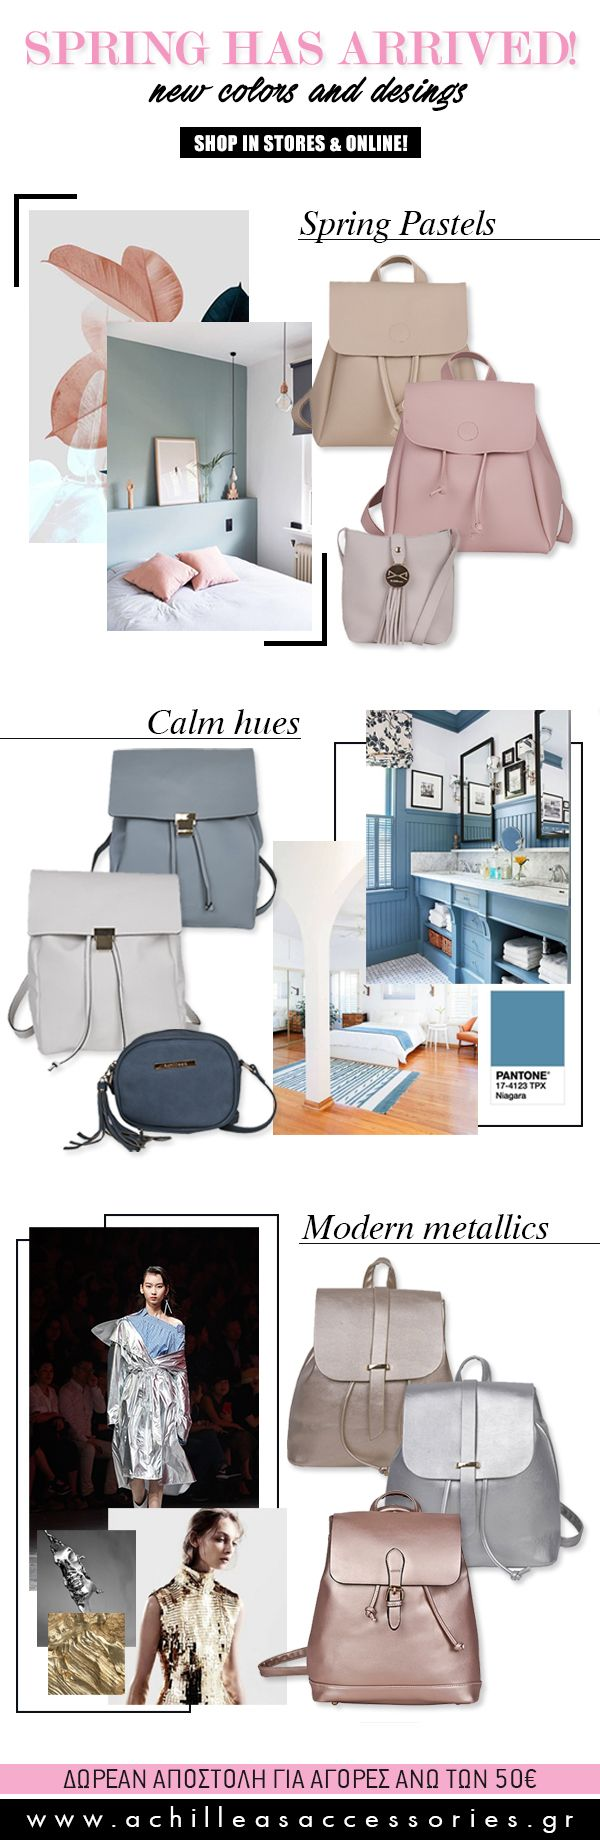 Modern hues and lines. Always cute and stylish.  #newsletter #newcollection #spring #summer #achilleasaccessories